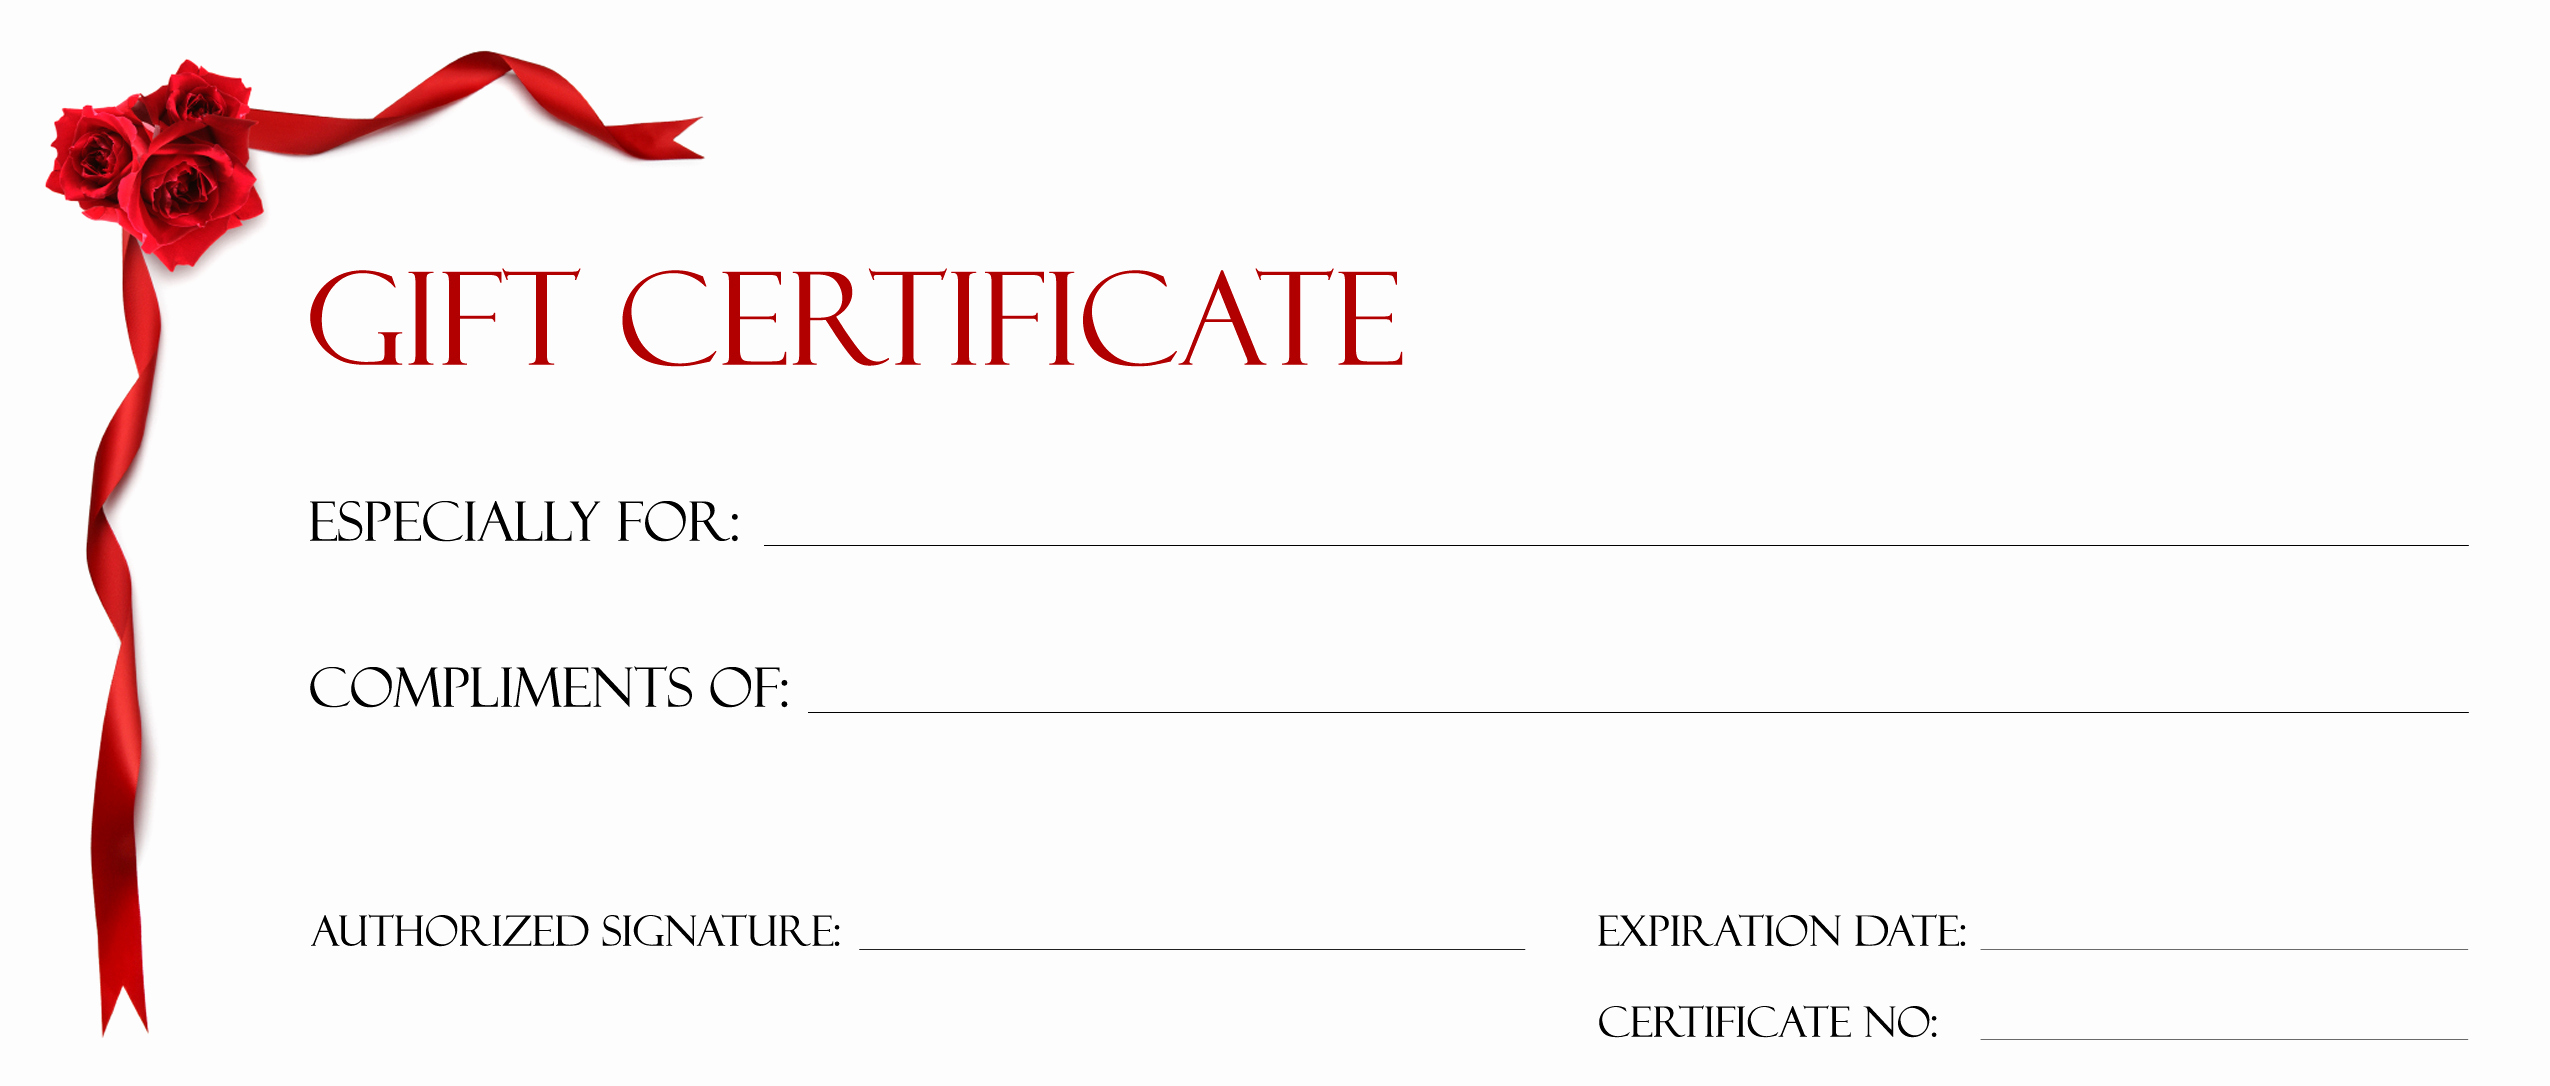 Custom Gift Certificate Template Free Awesome Gift Certificate Make Your Own